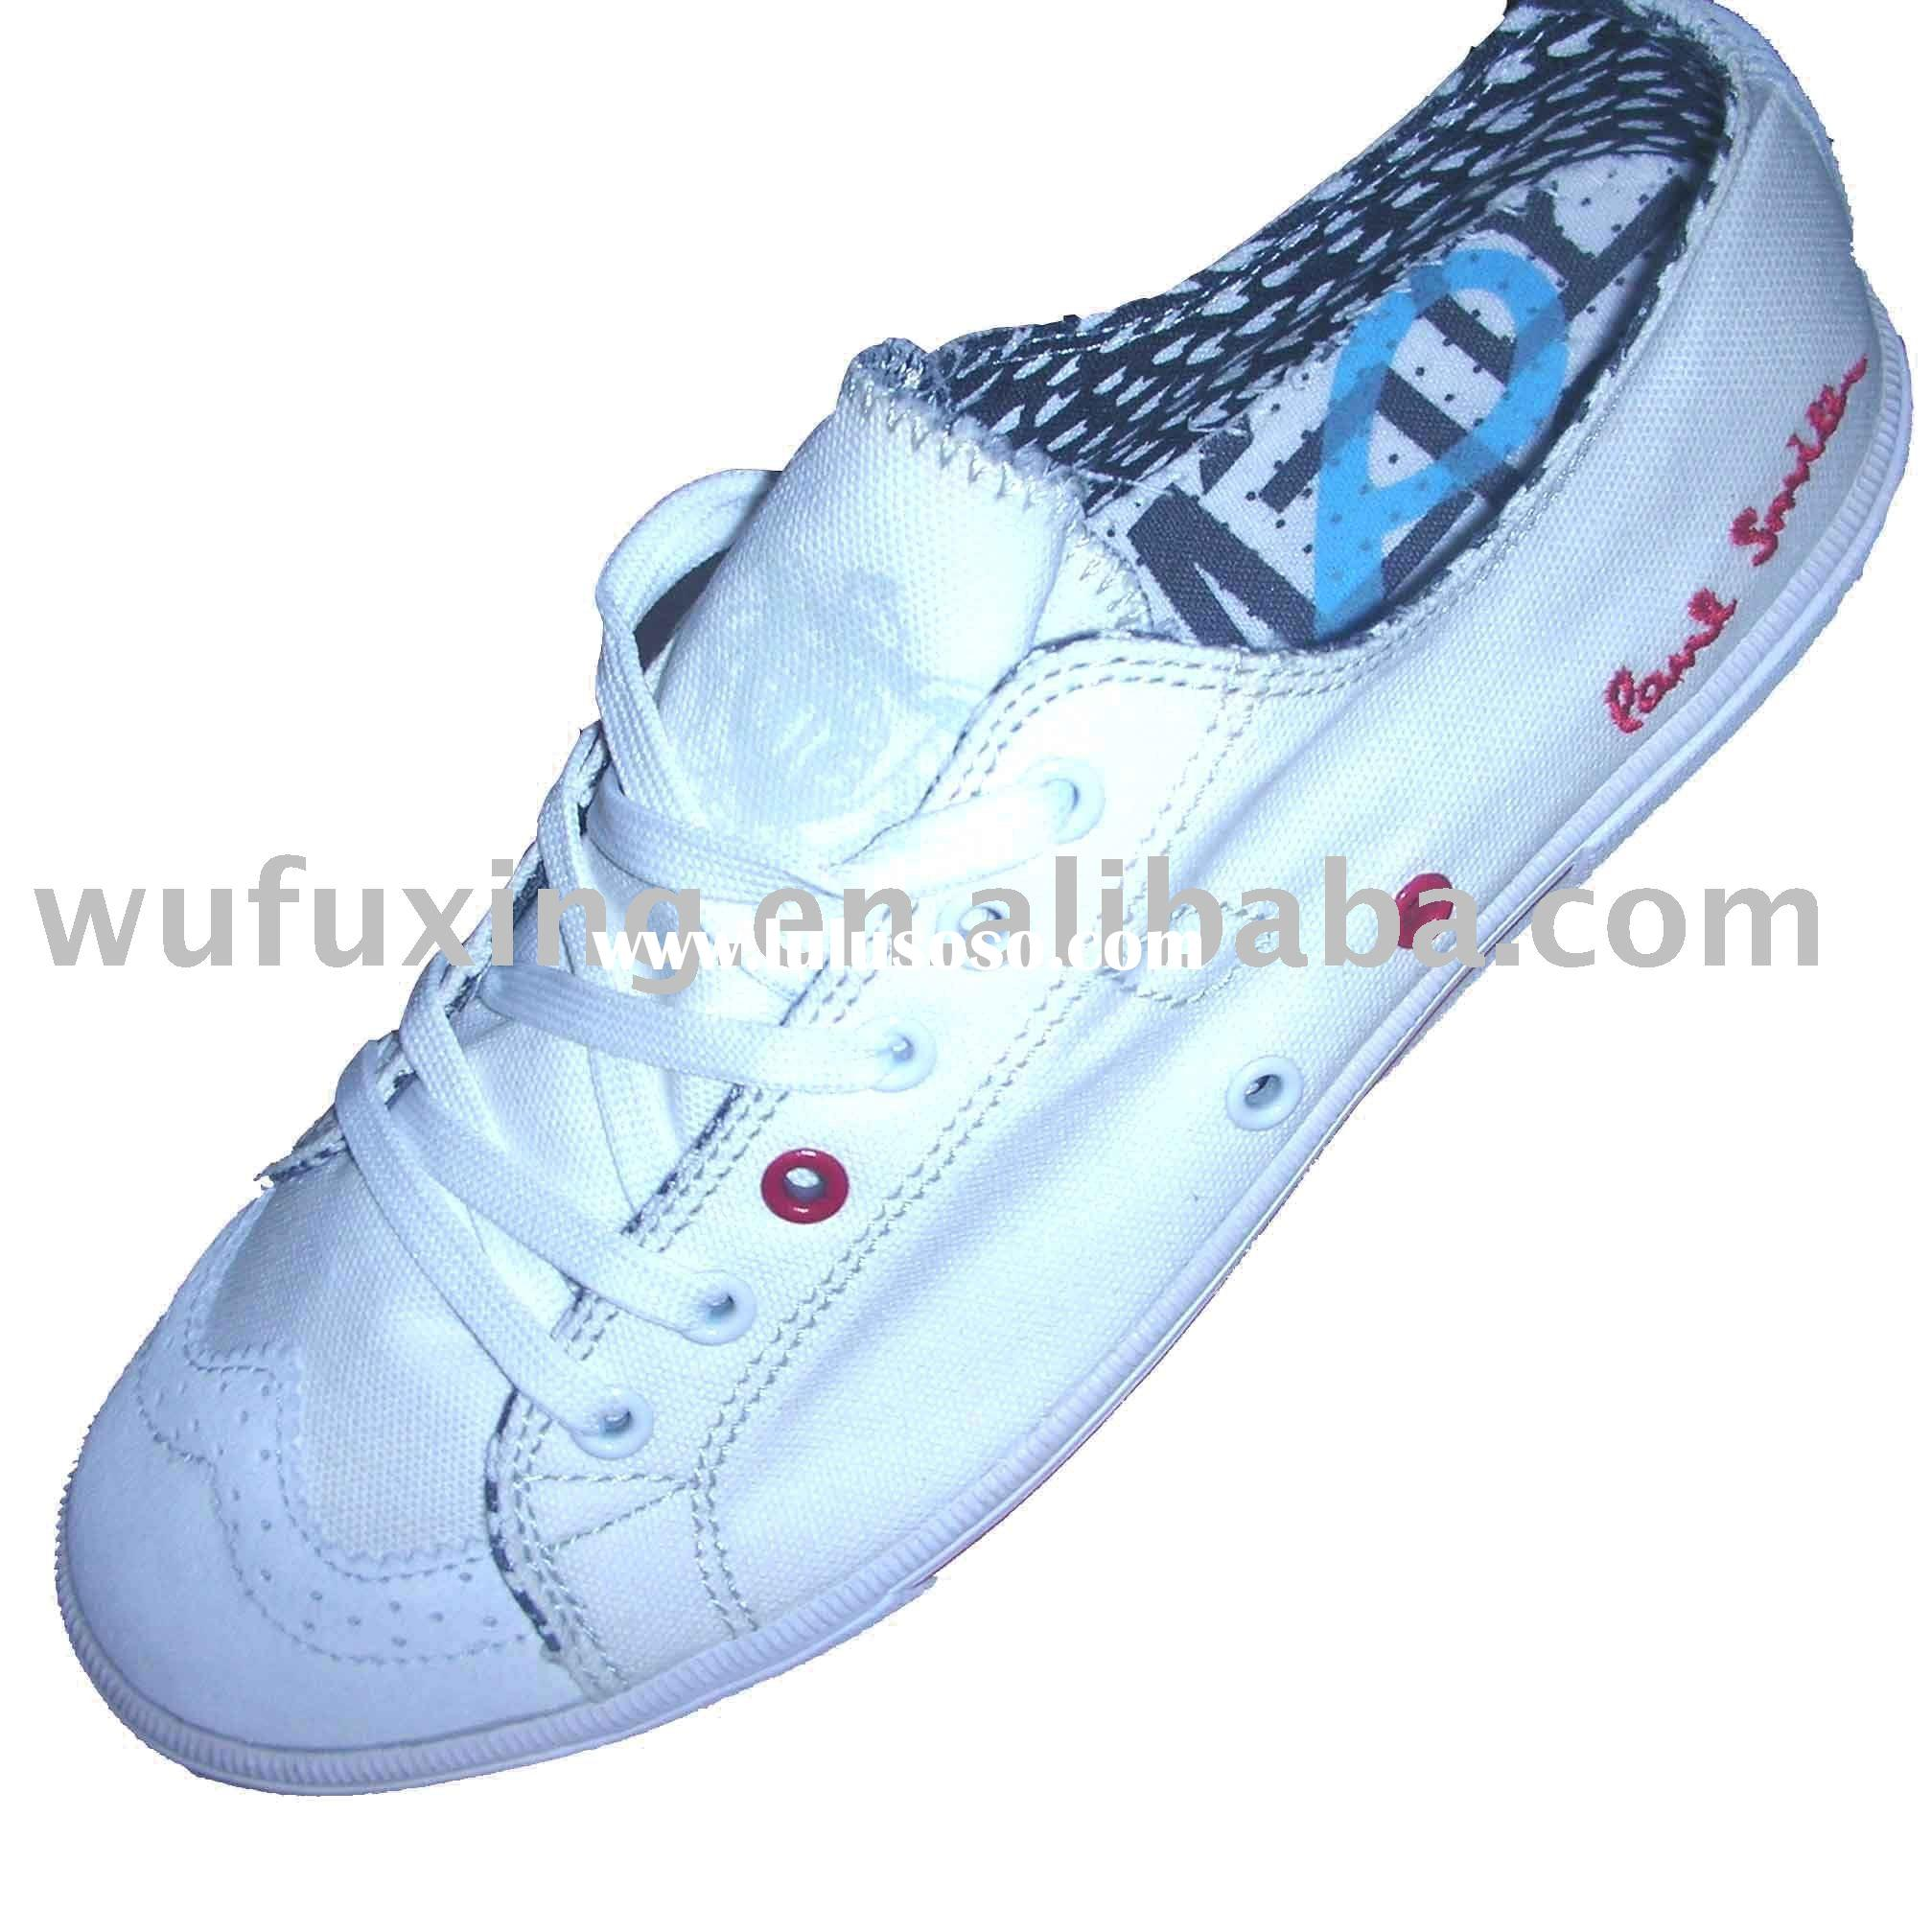 classical white canvas shoes